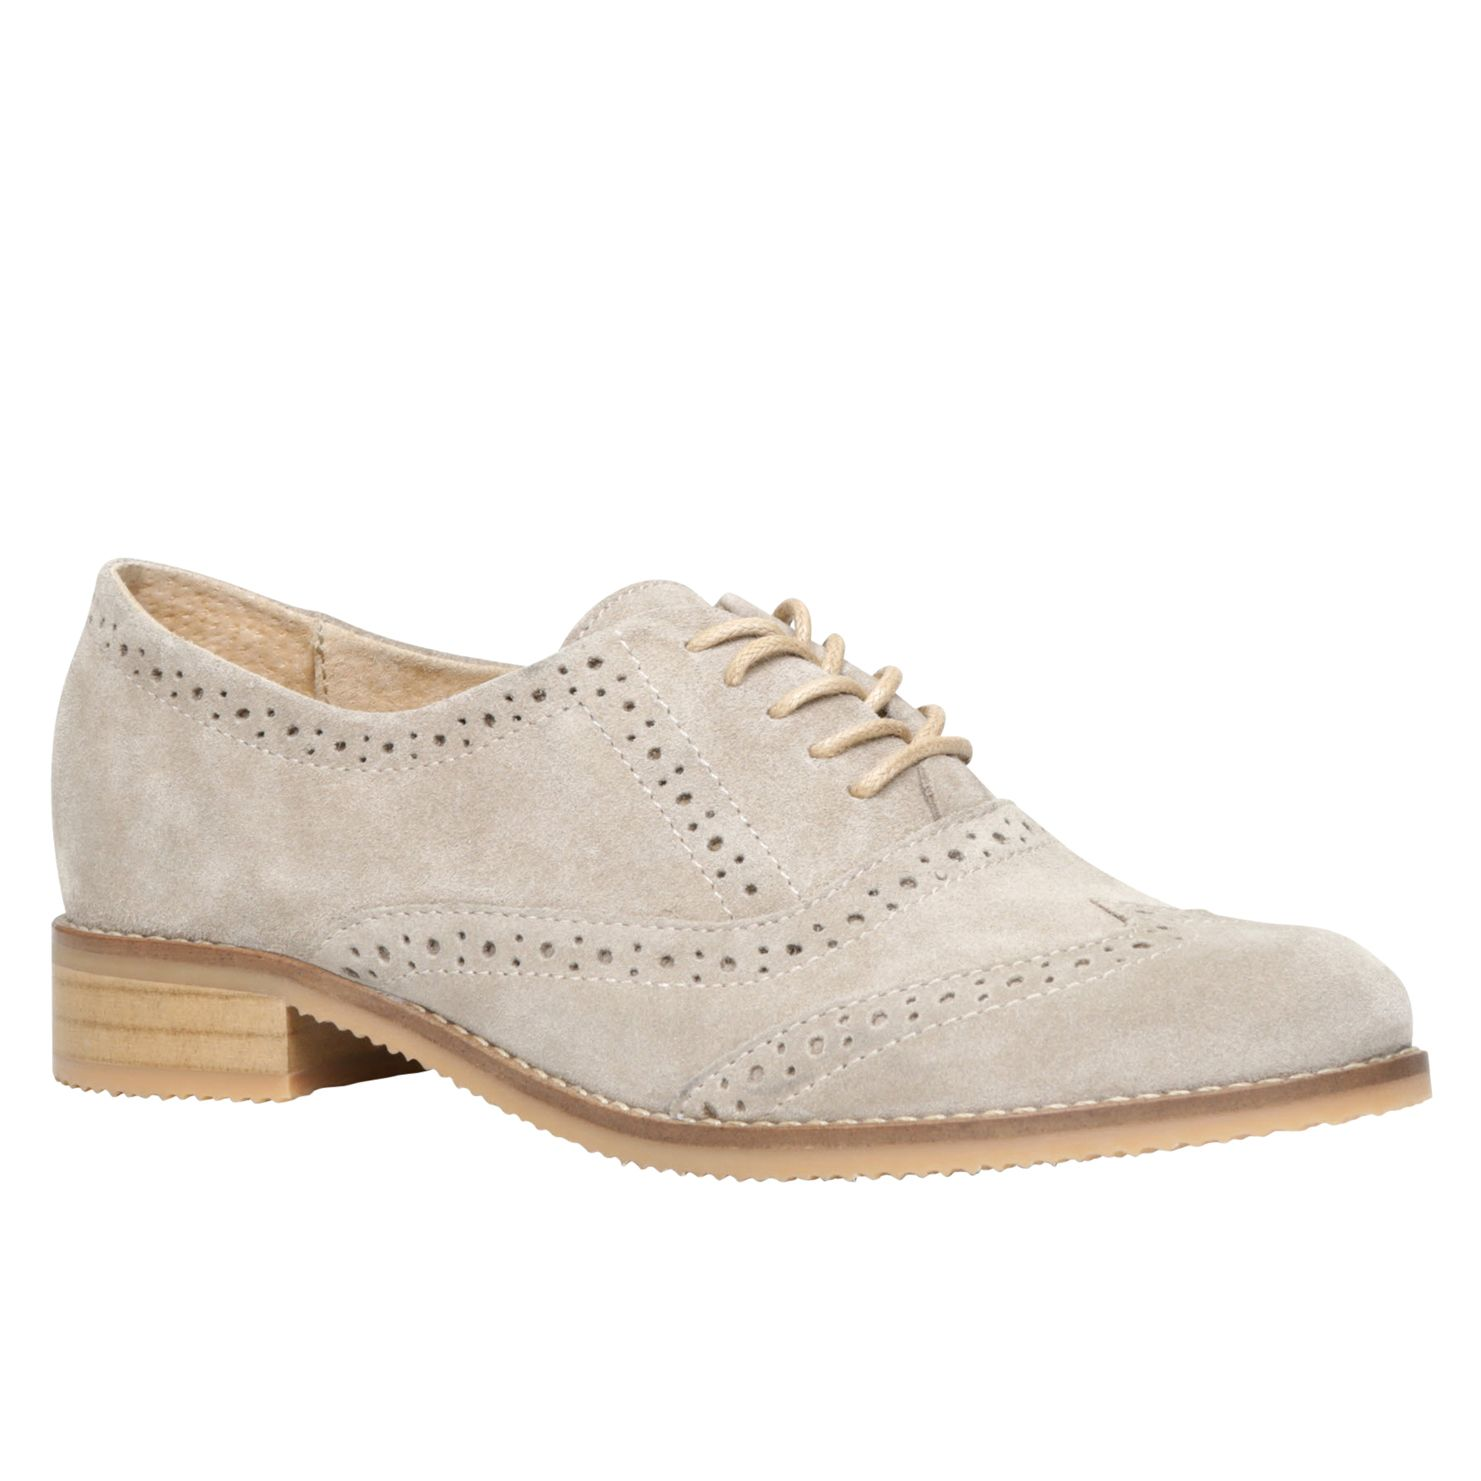 Mirerari block heel brogue shoes